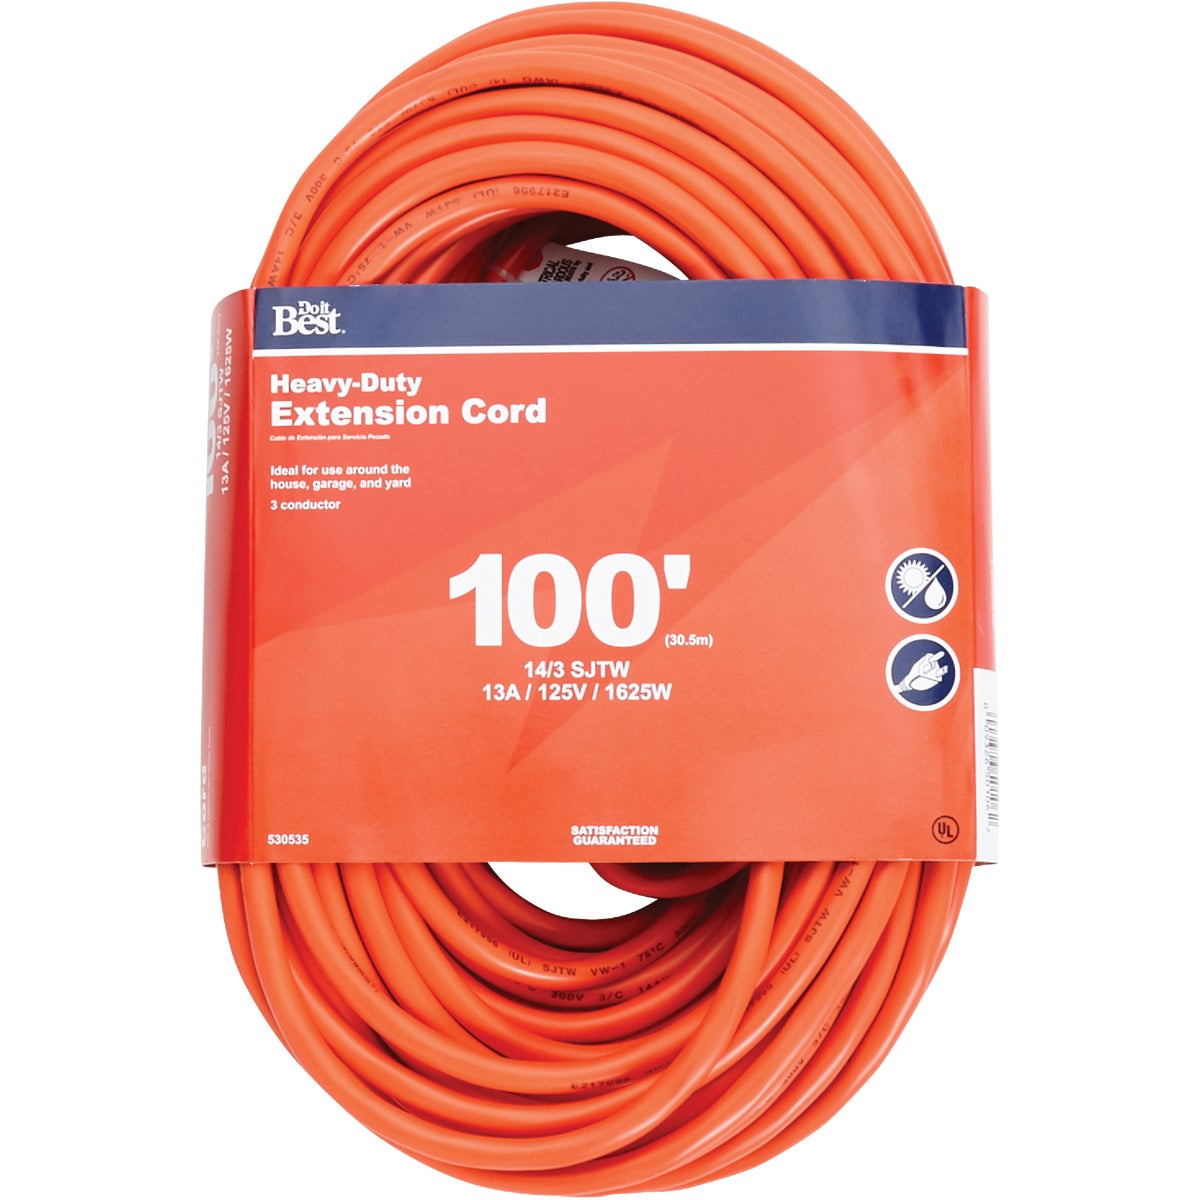 100' 14/3 OUTDOOR CORD - 550627 by Coleman Cable Import